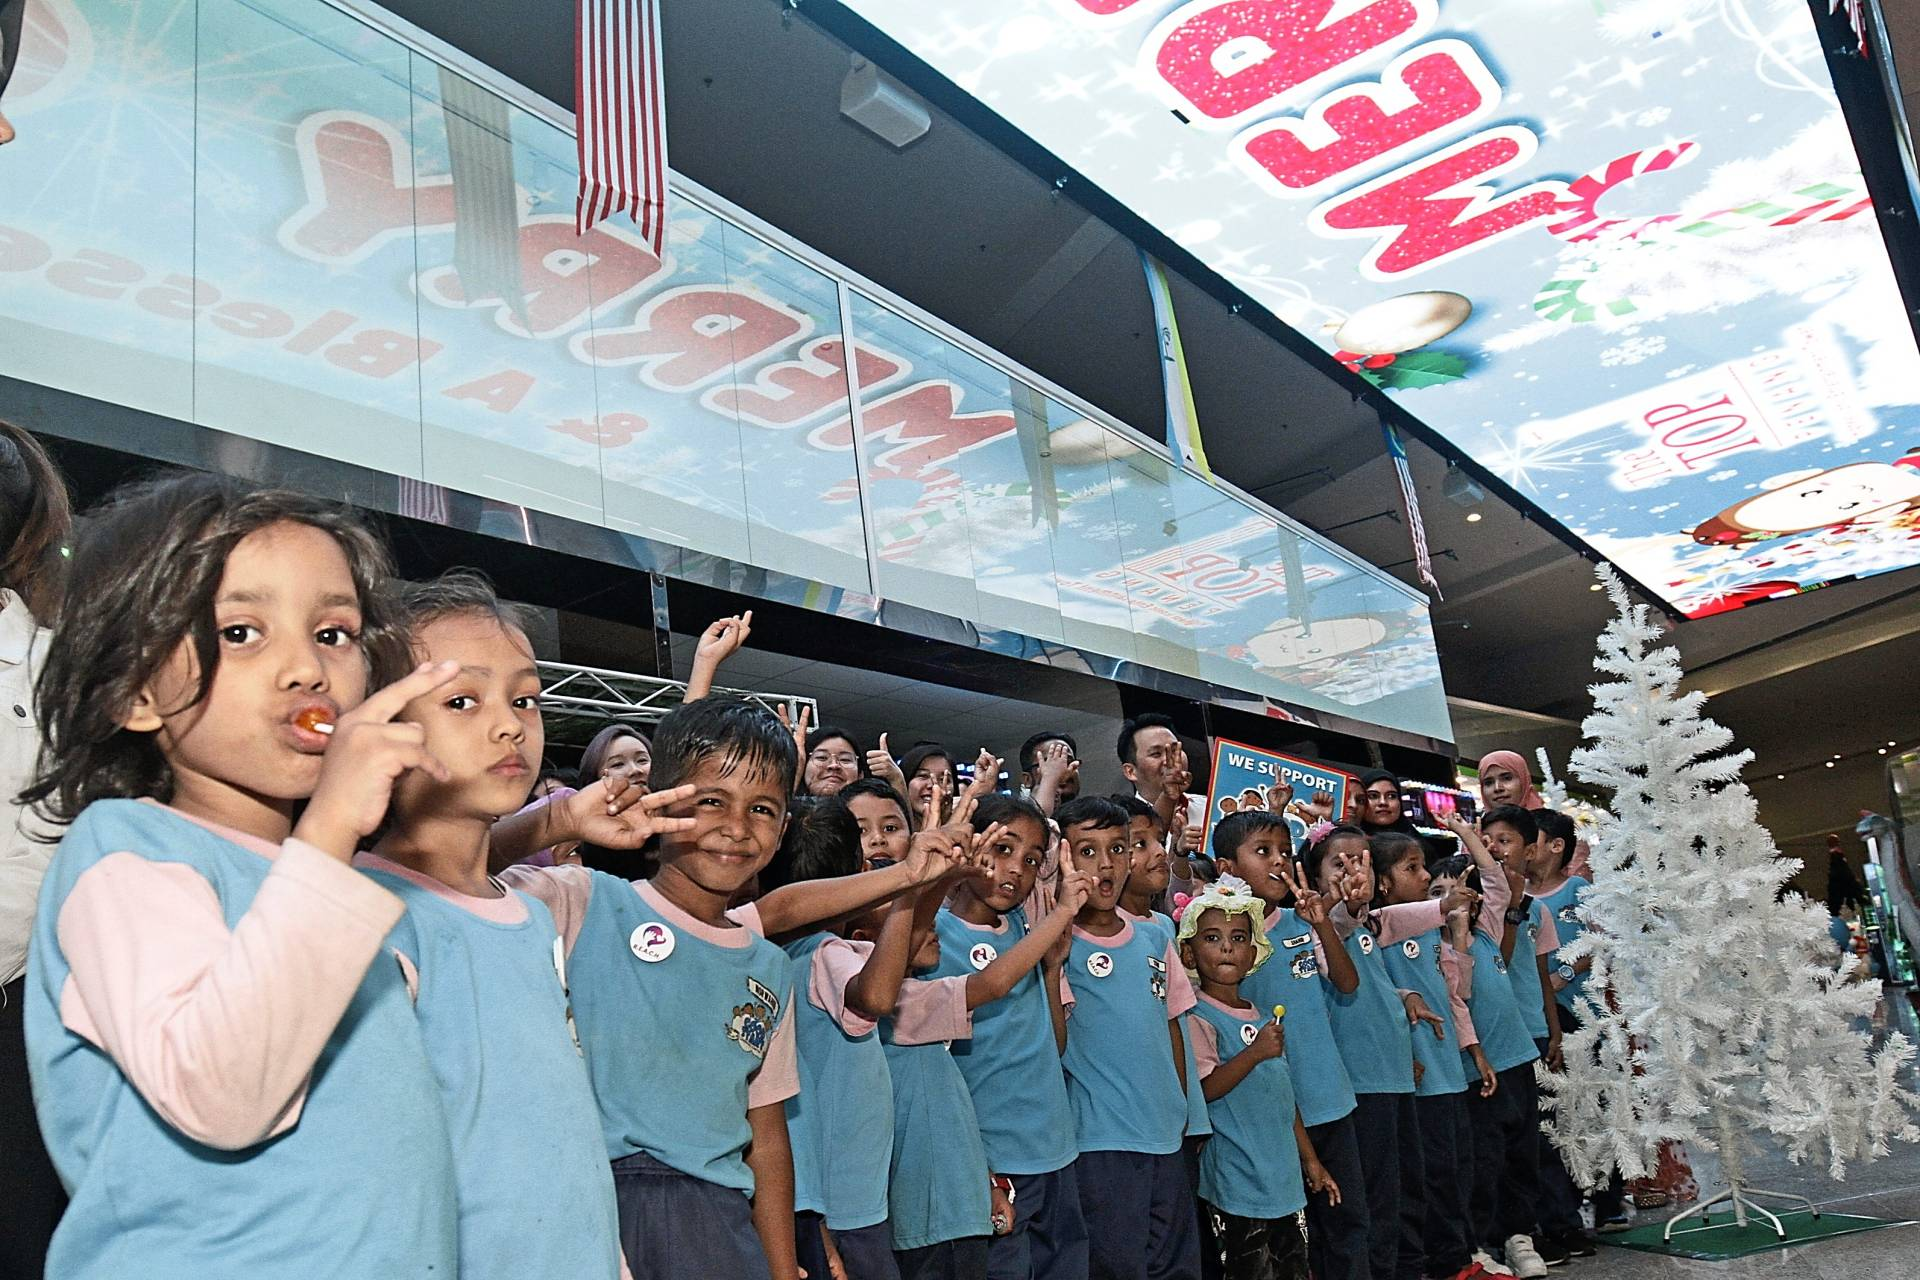 The children expressing their happiness during the Doraemon launch.